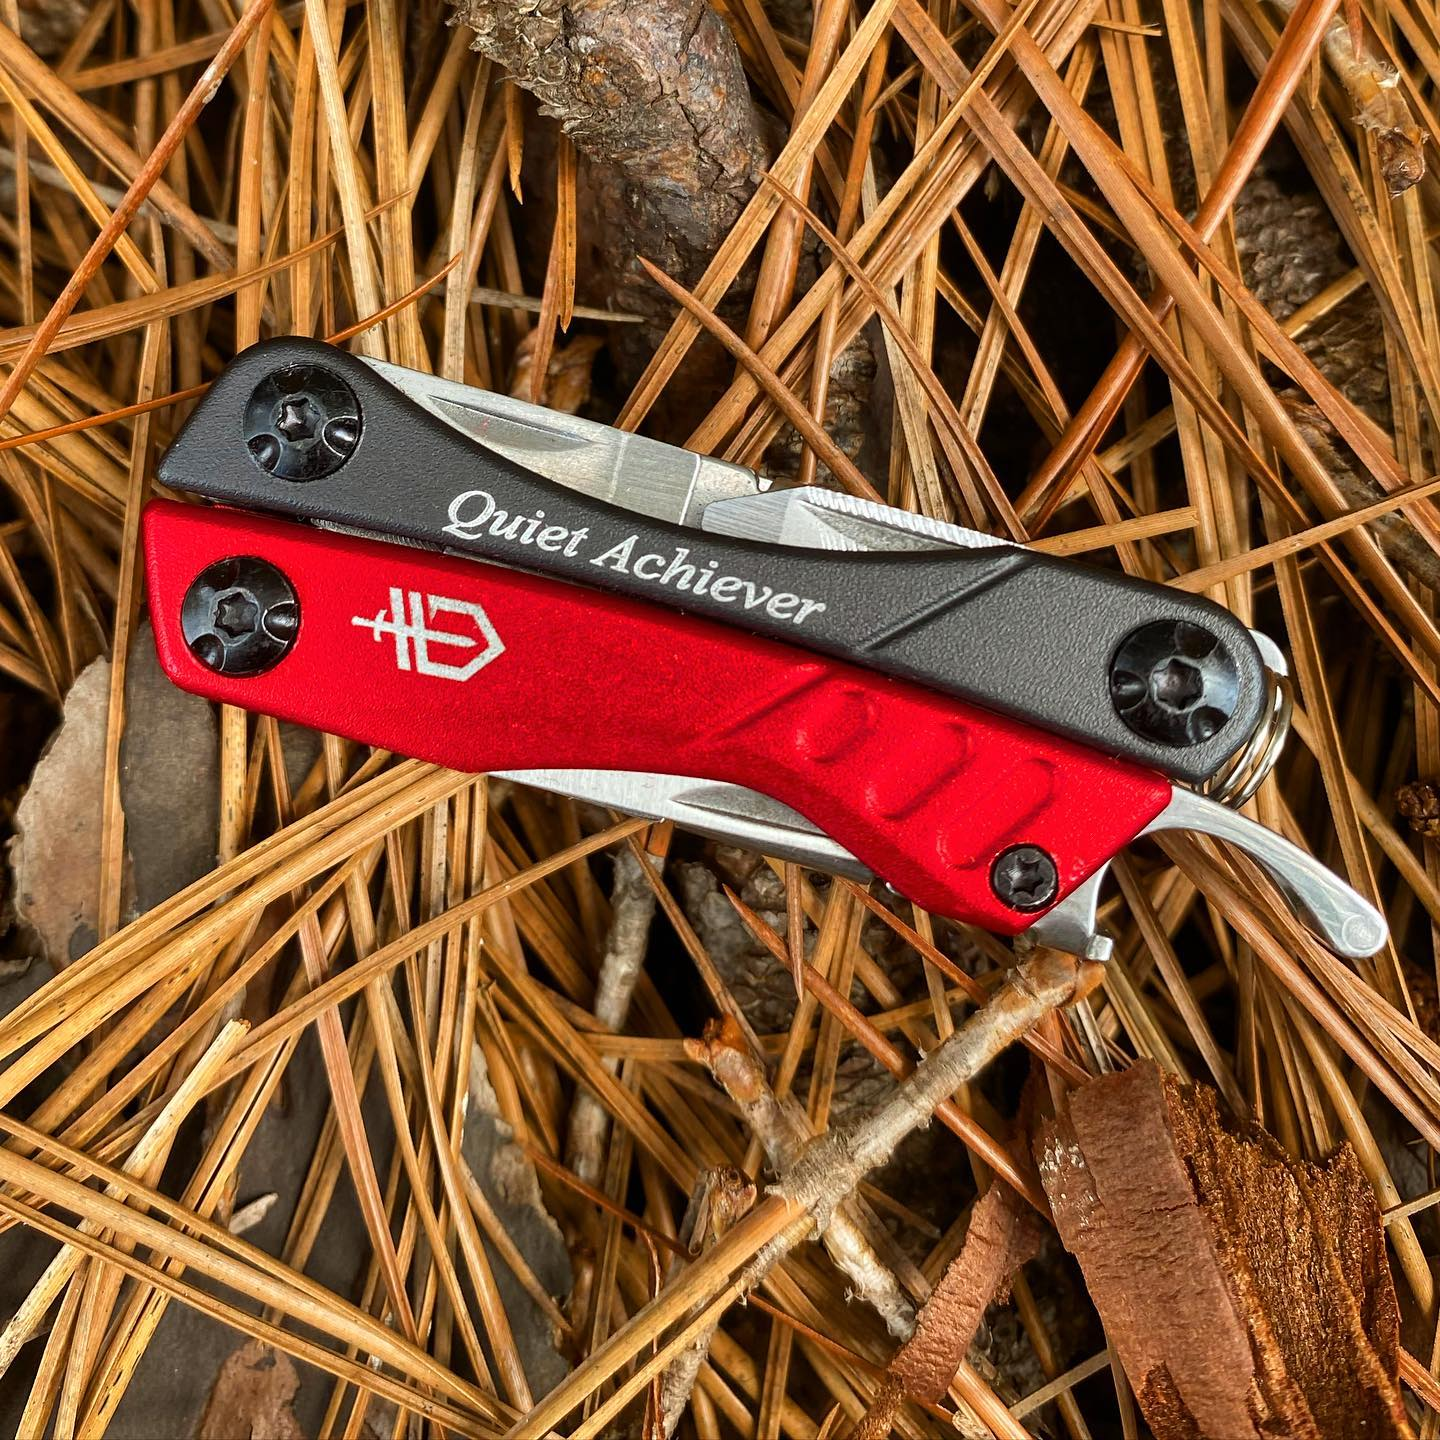 """Gerber Red Dime Multitool 30-000417.  This tool is small but it is """" A Quiet Achiever"""". It can handle your needs! #reddimemultitool #gerberdime #30-000417 #engravedtool"""